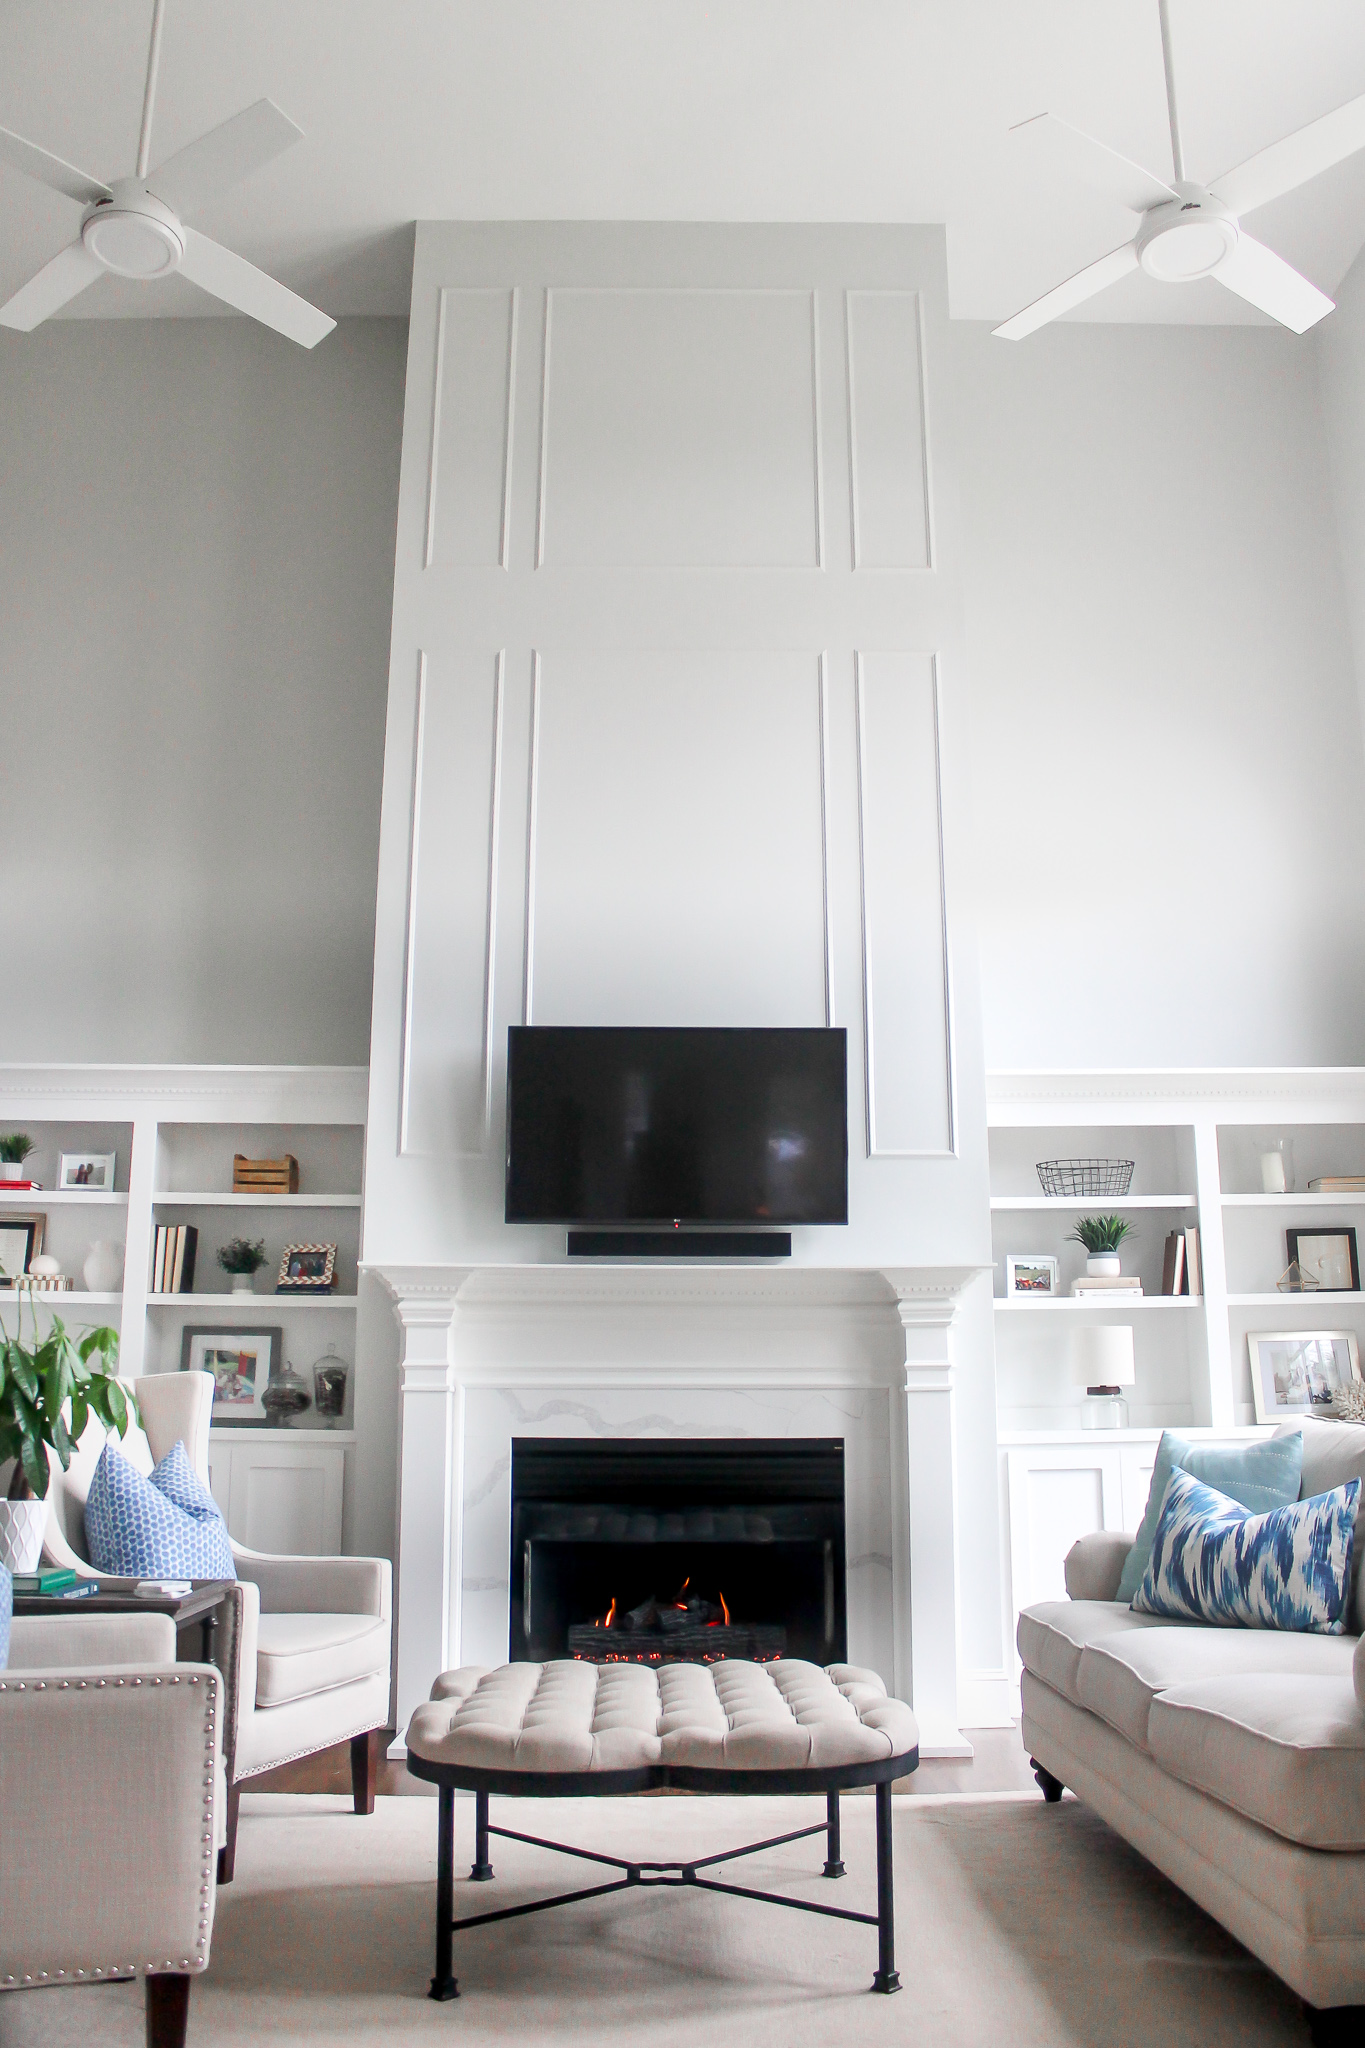 North Carolina lifestyle blogger, Christina shares a fireplace mantel makeover. Check out how she styles and decorates this fireplace mantel!